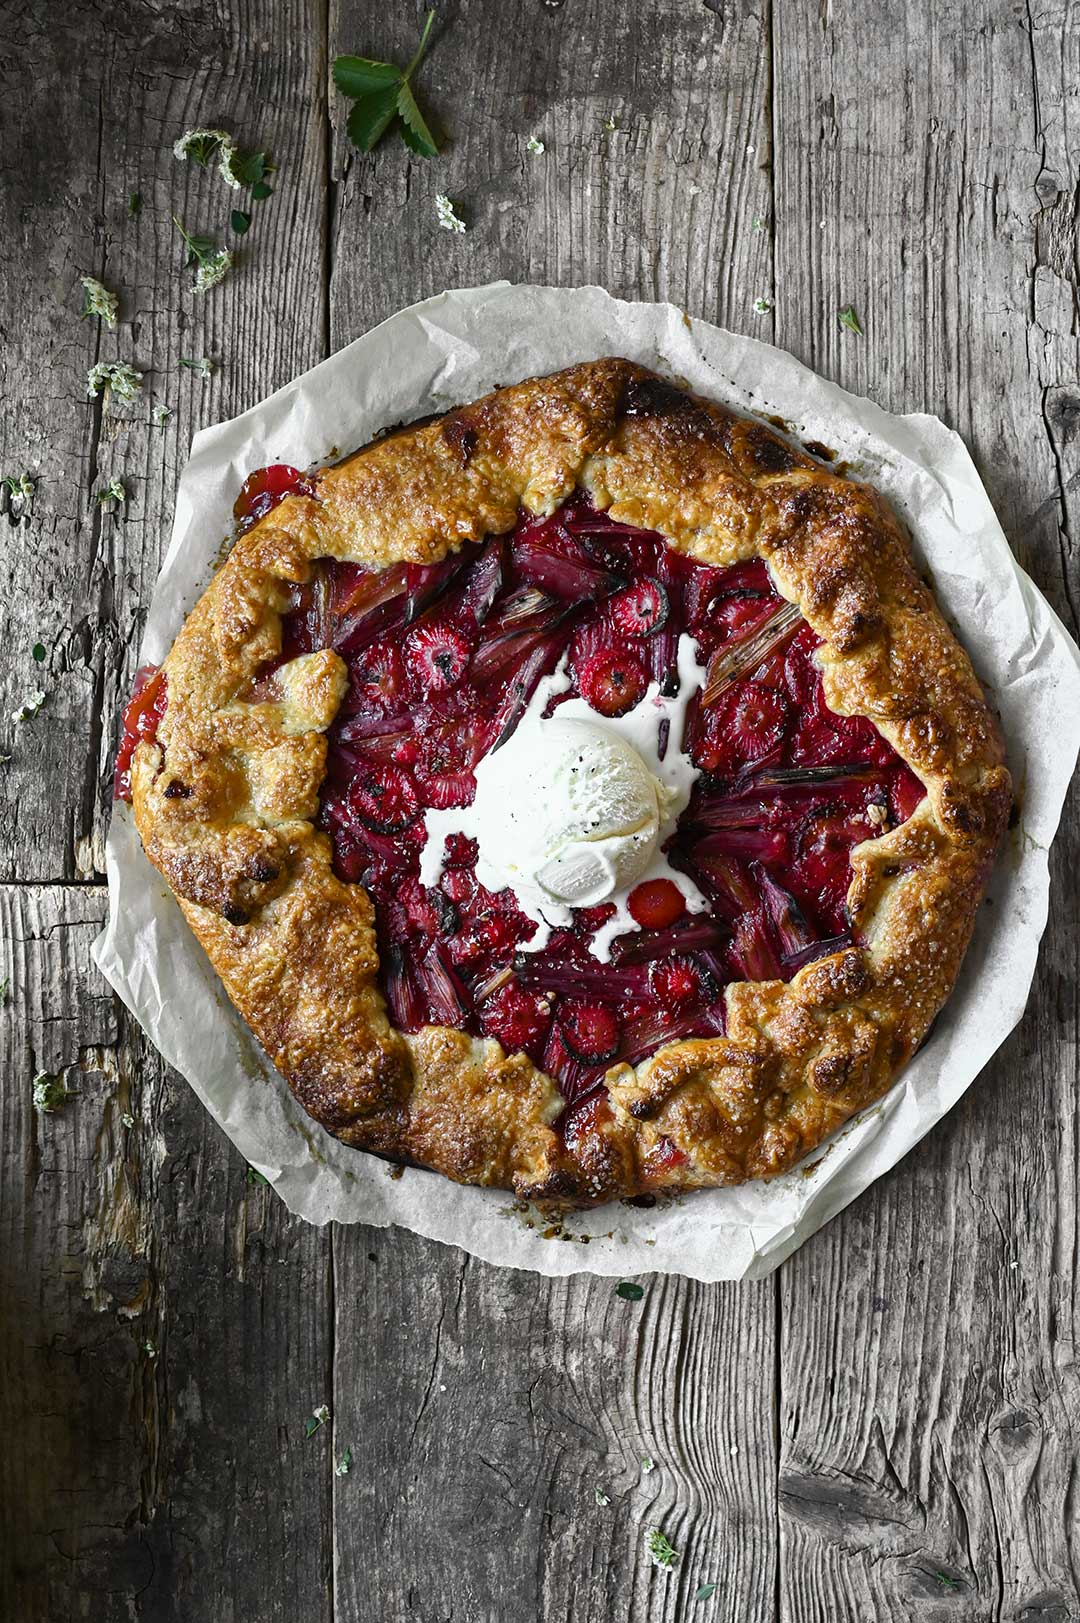 serving dumplings | Rhubarb-strawberry galette